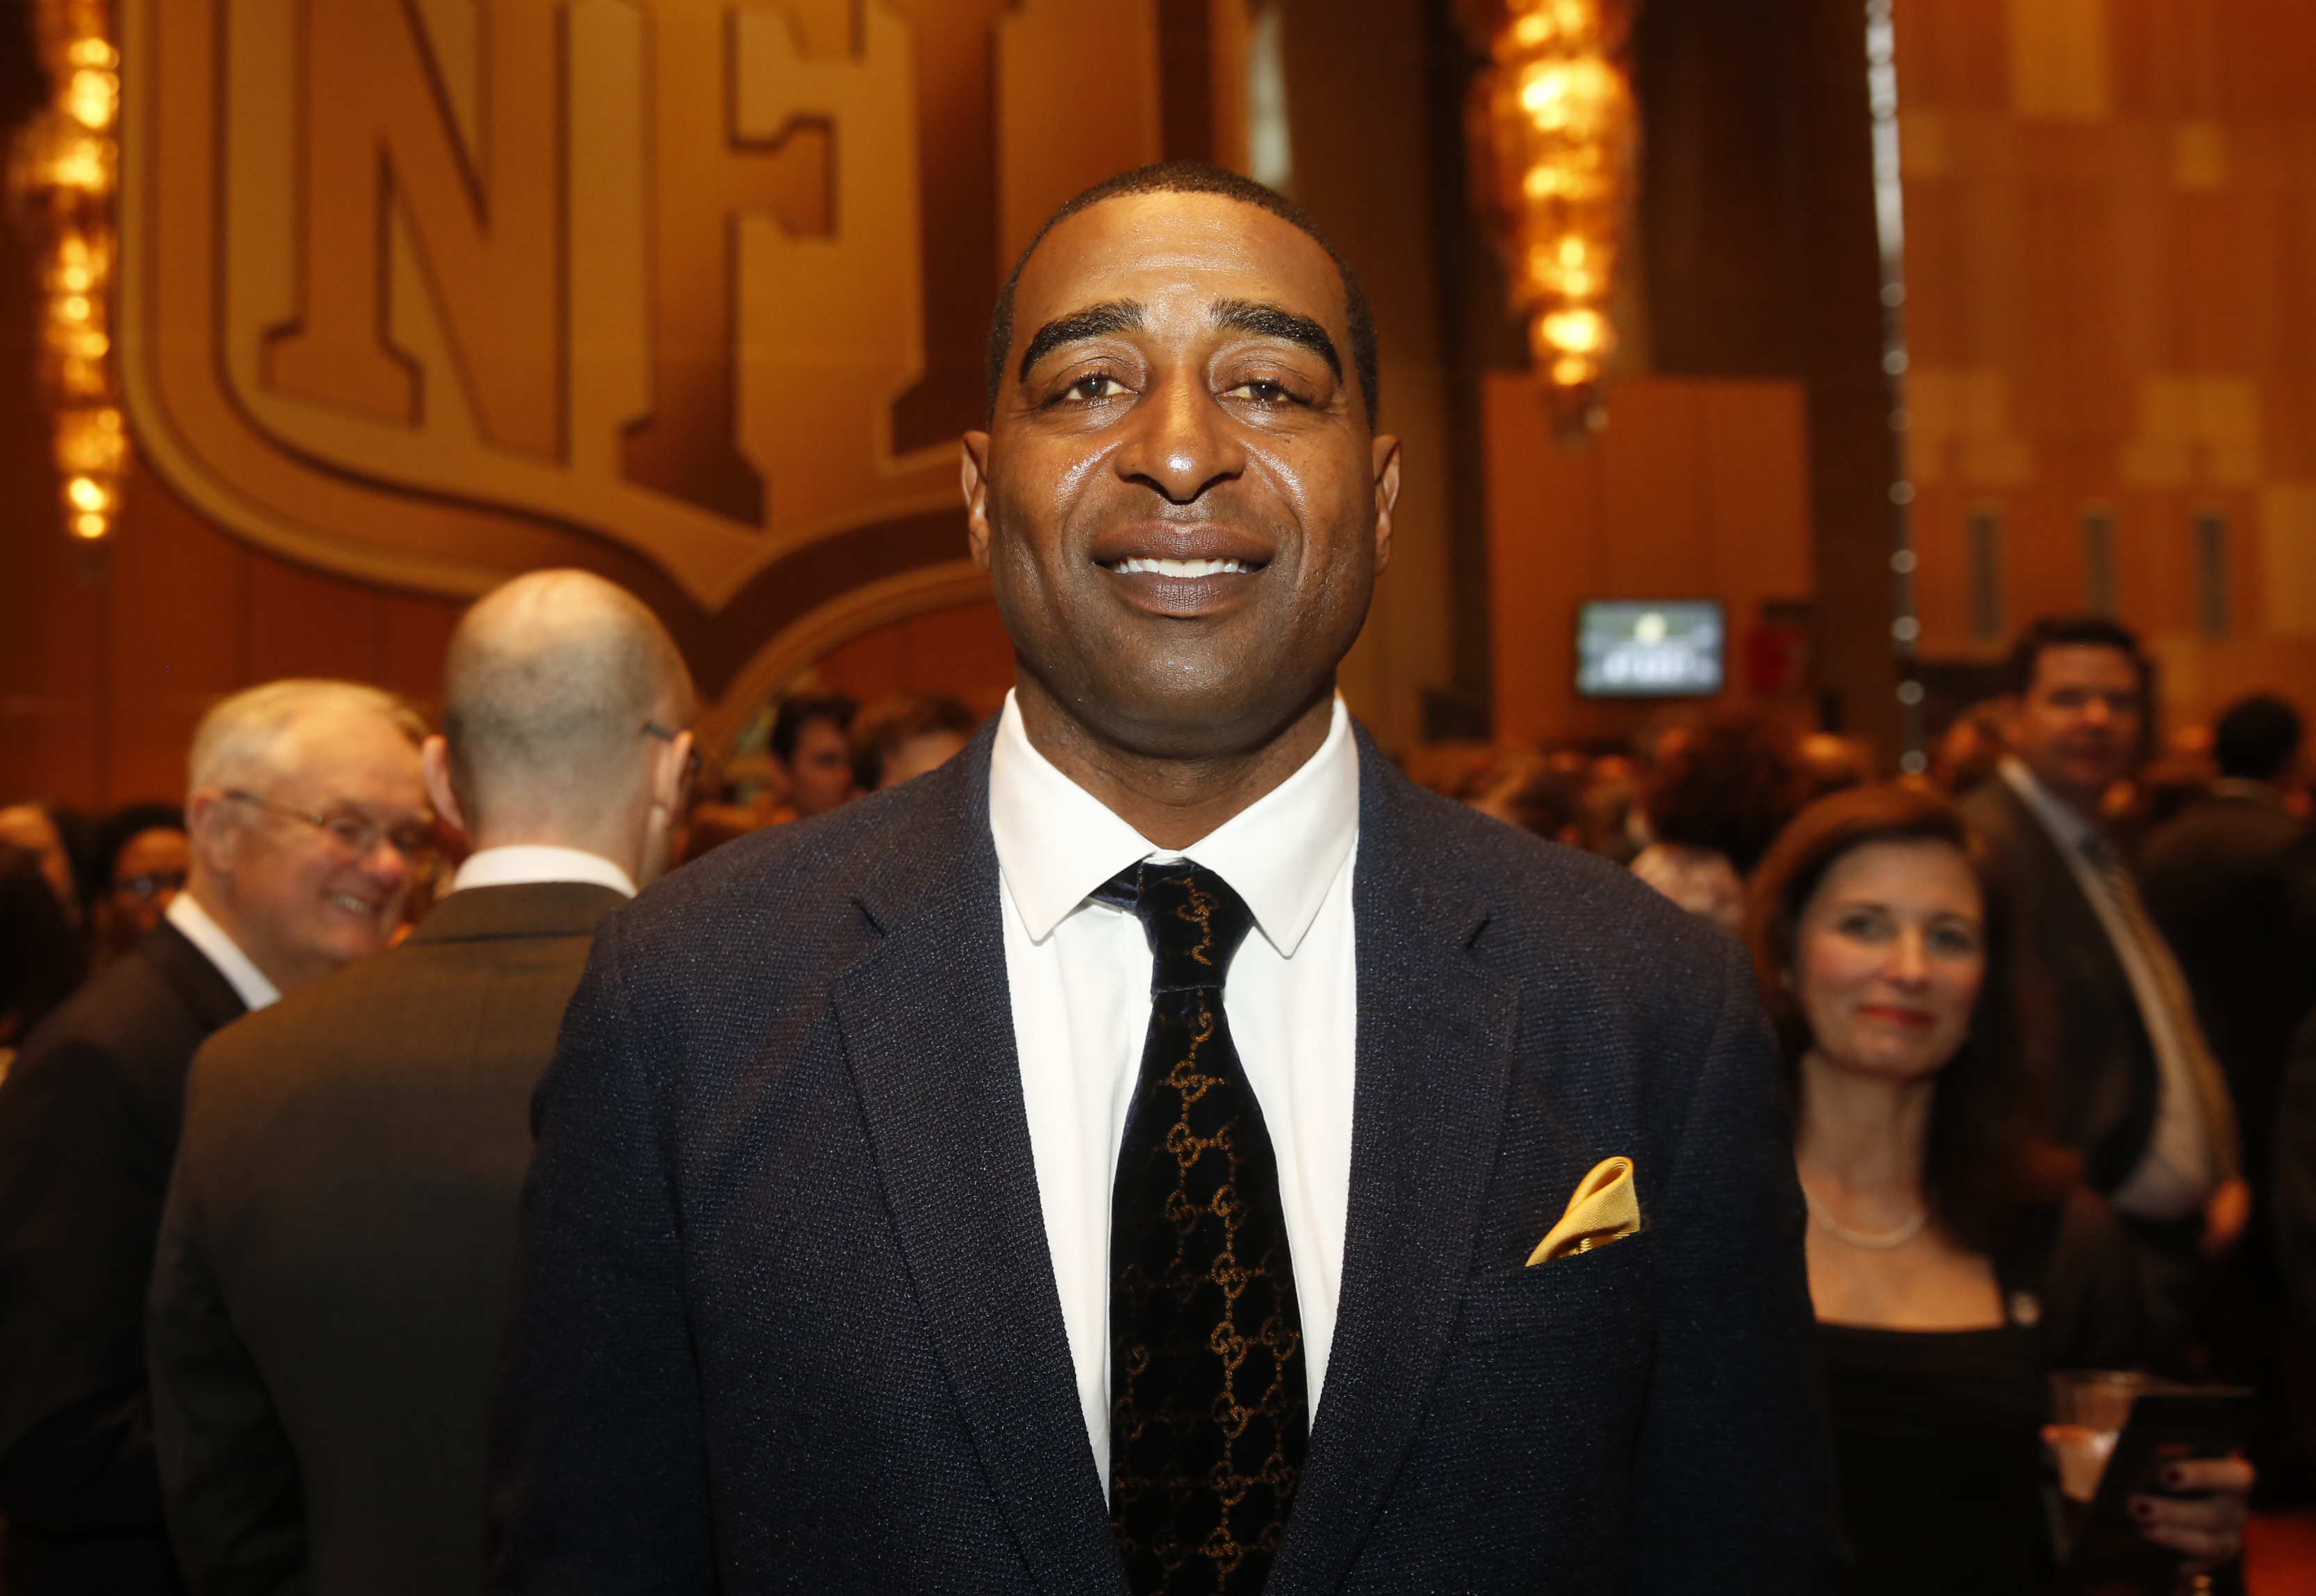 Watch: Emotional Cris Carter on effects of brain injuries: 'I wonder - what's going to happen?'